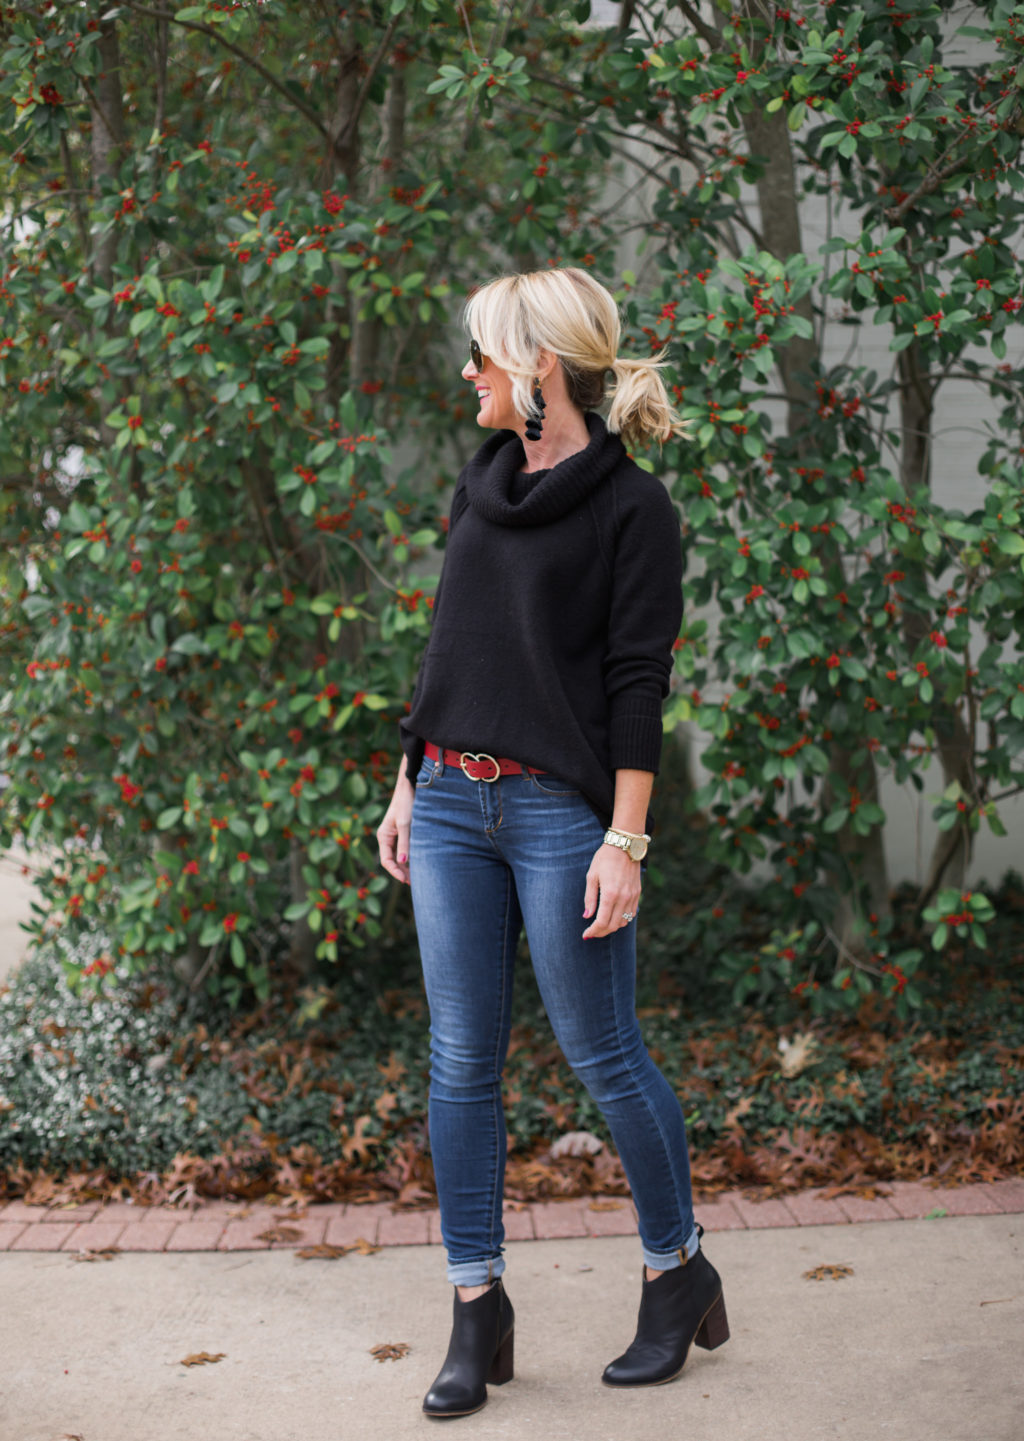 afd674302a0bd Sugarplum Style Tip | How to Wear Ankle Boots with Skinny Jeans | hi ...